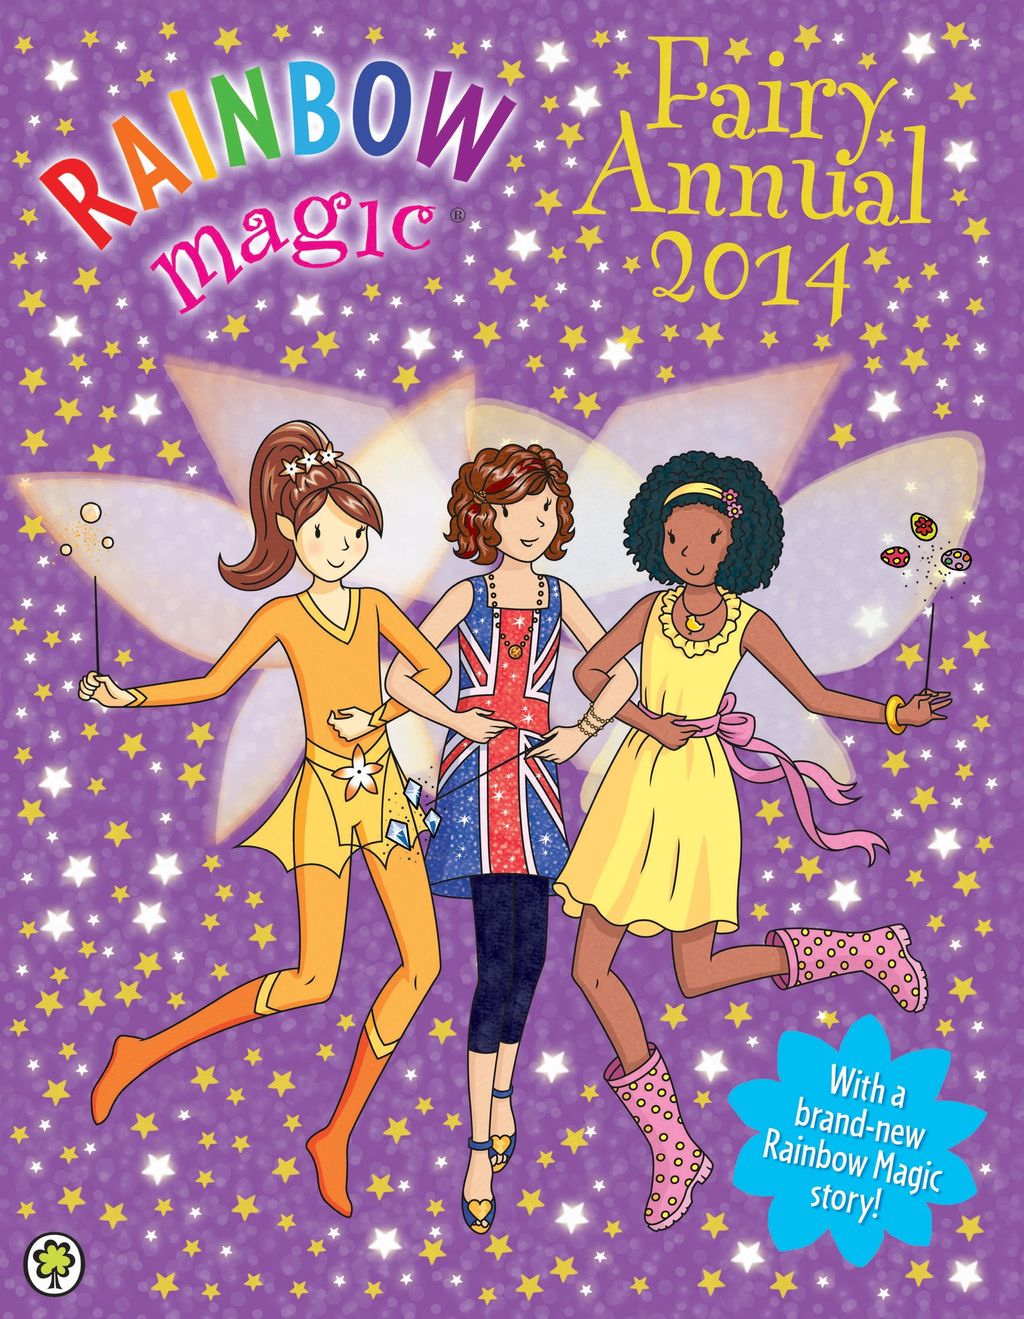 Rainbow Magic: Fairy Annual 2014